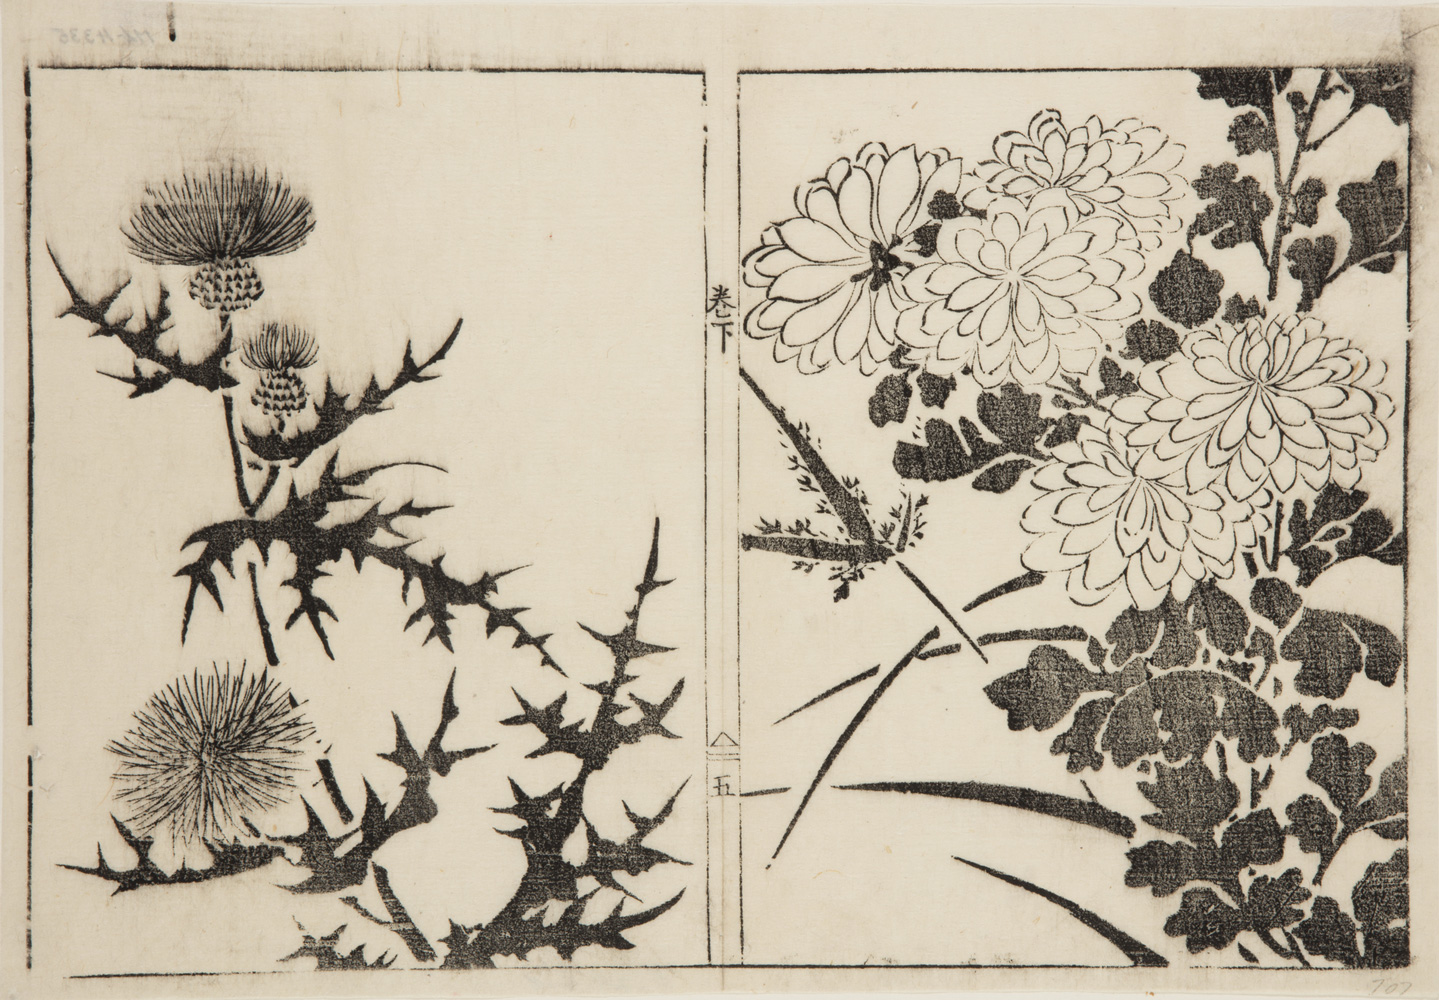 Two Japanese prints one of thistles and spiky leaves, the other of flowers and leaves.